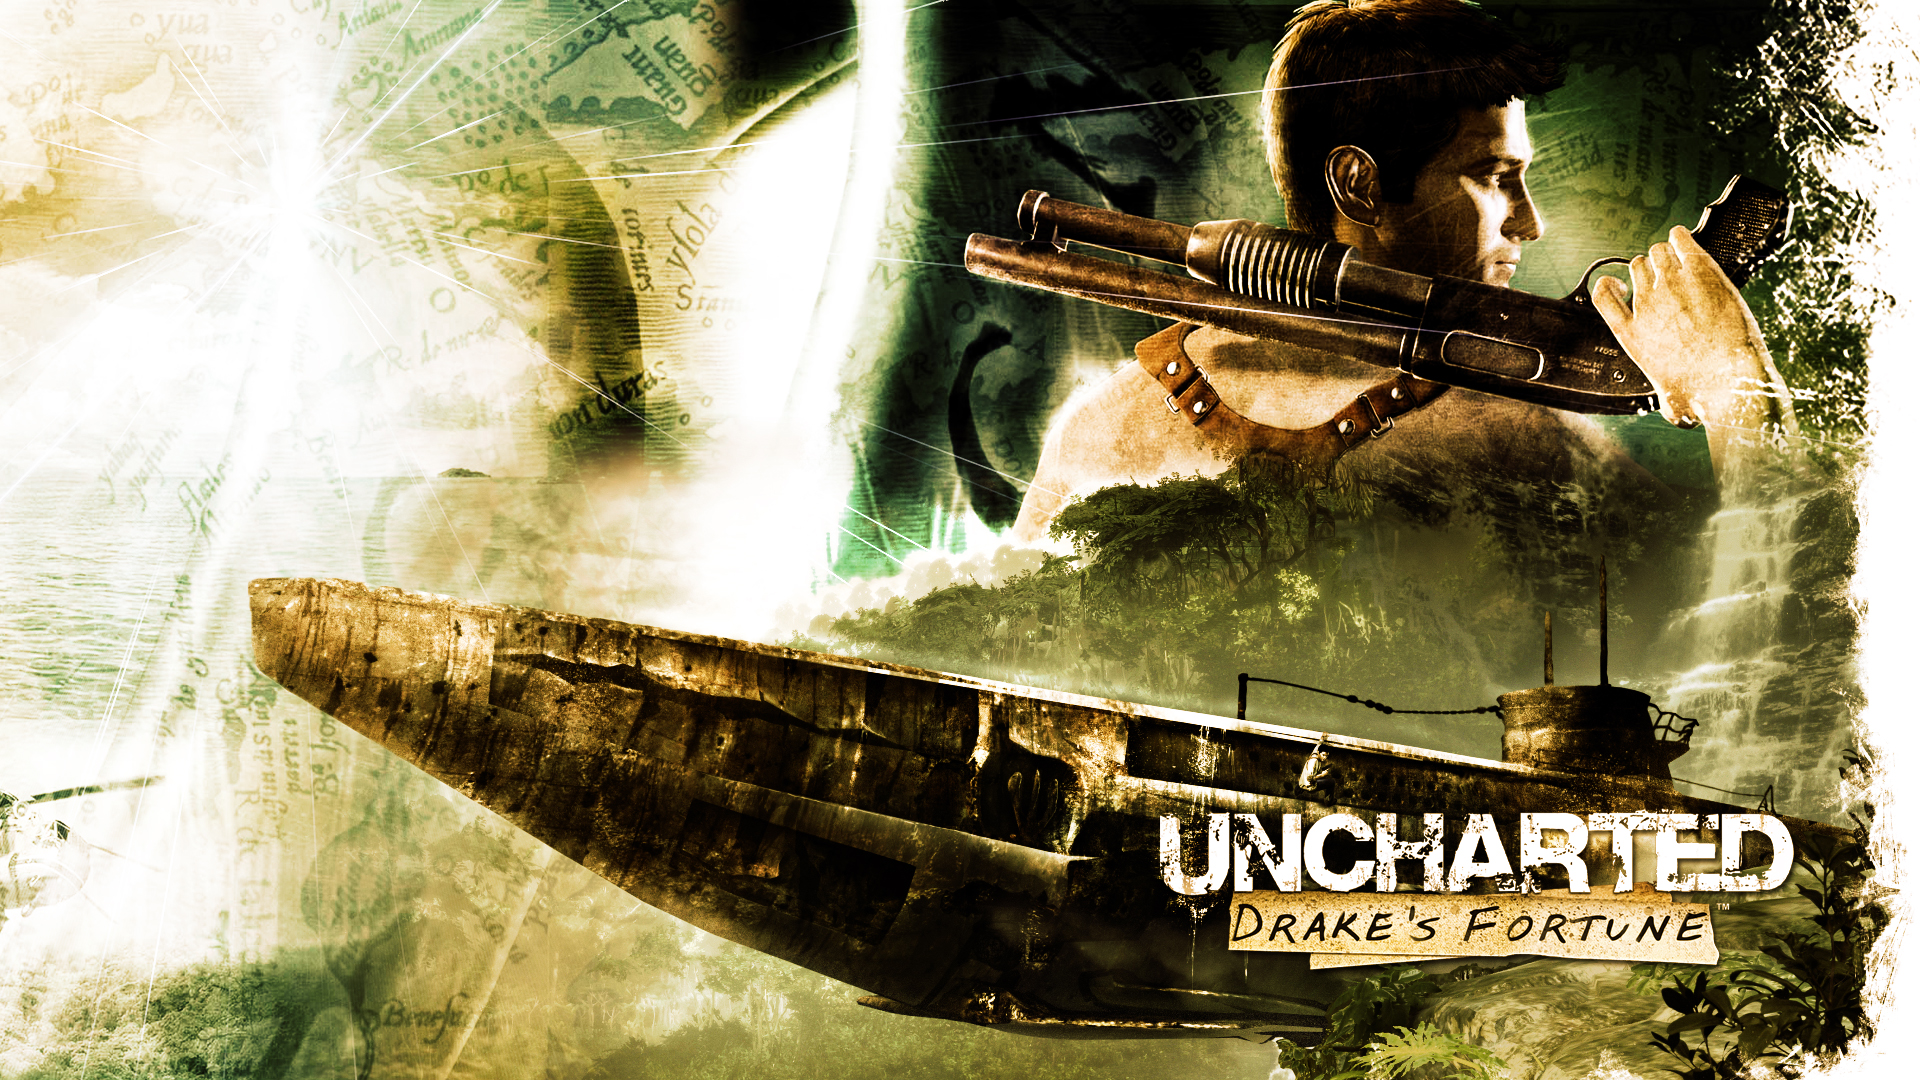 14 Uncharted Drakes Fortune HD Wallpapers